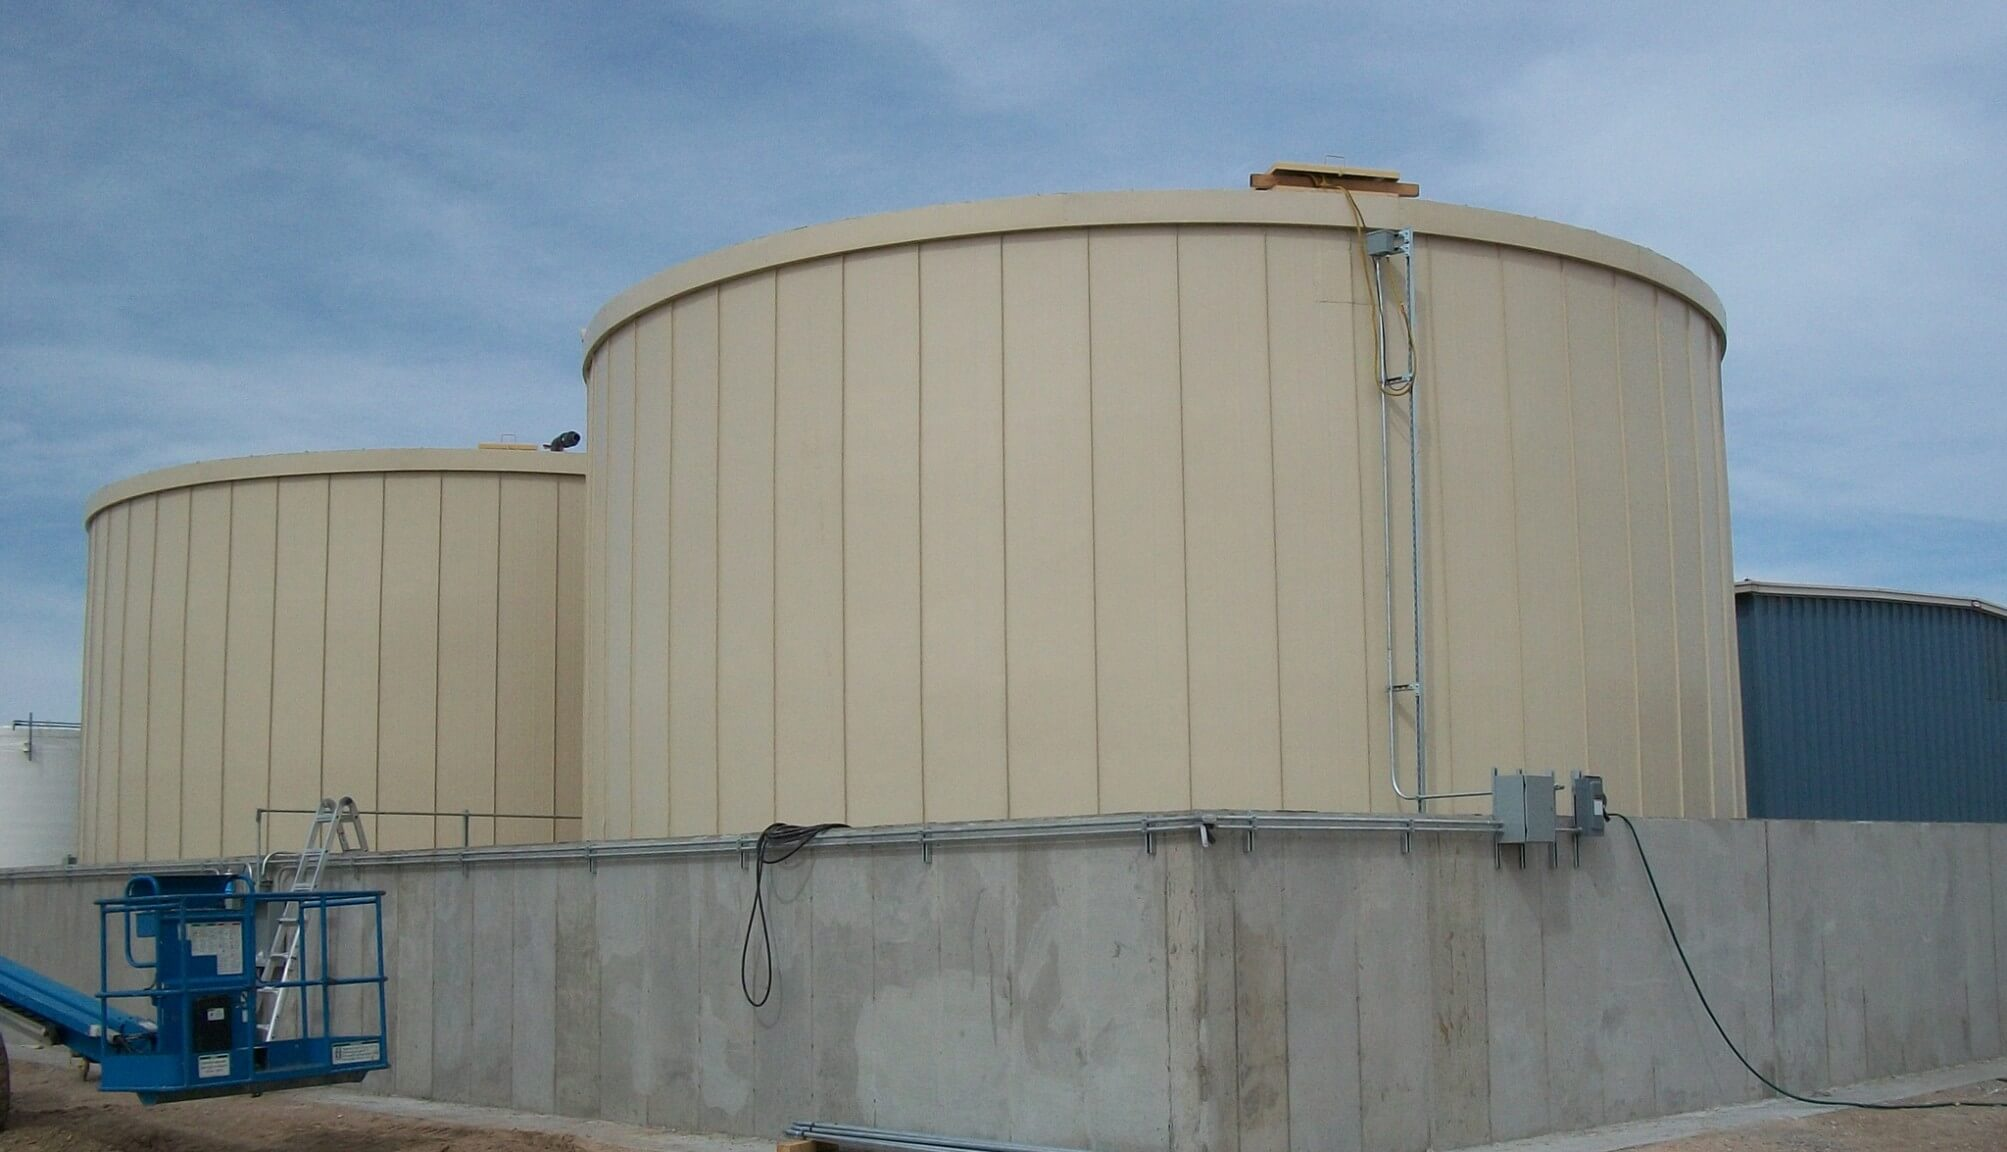 Ground Storage Tanks Cheyenne WY RIDGLOK® Vertical Standing Seam Insulated  Panel System Panels In Fawn Color